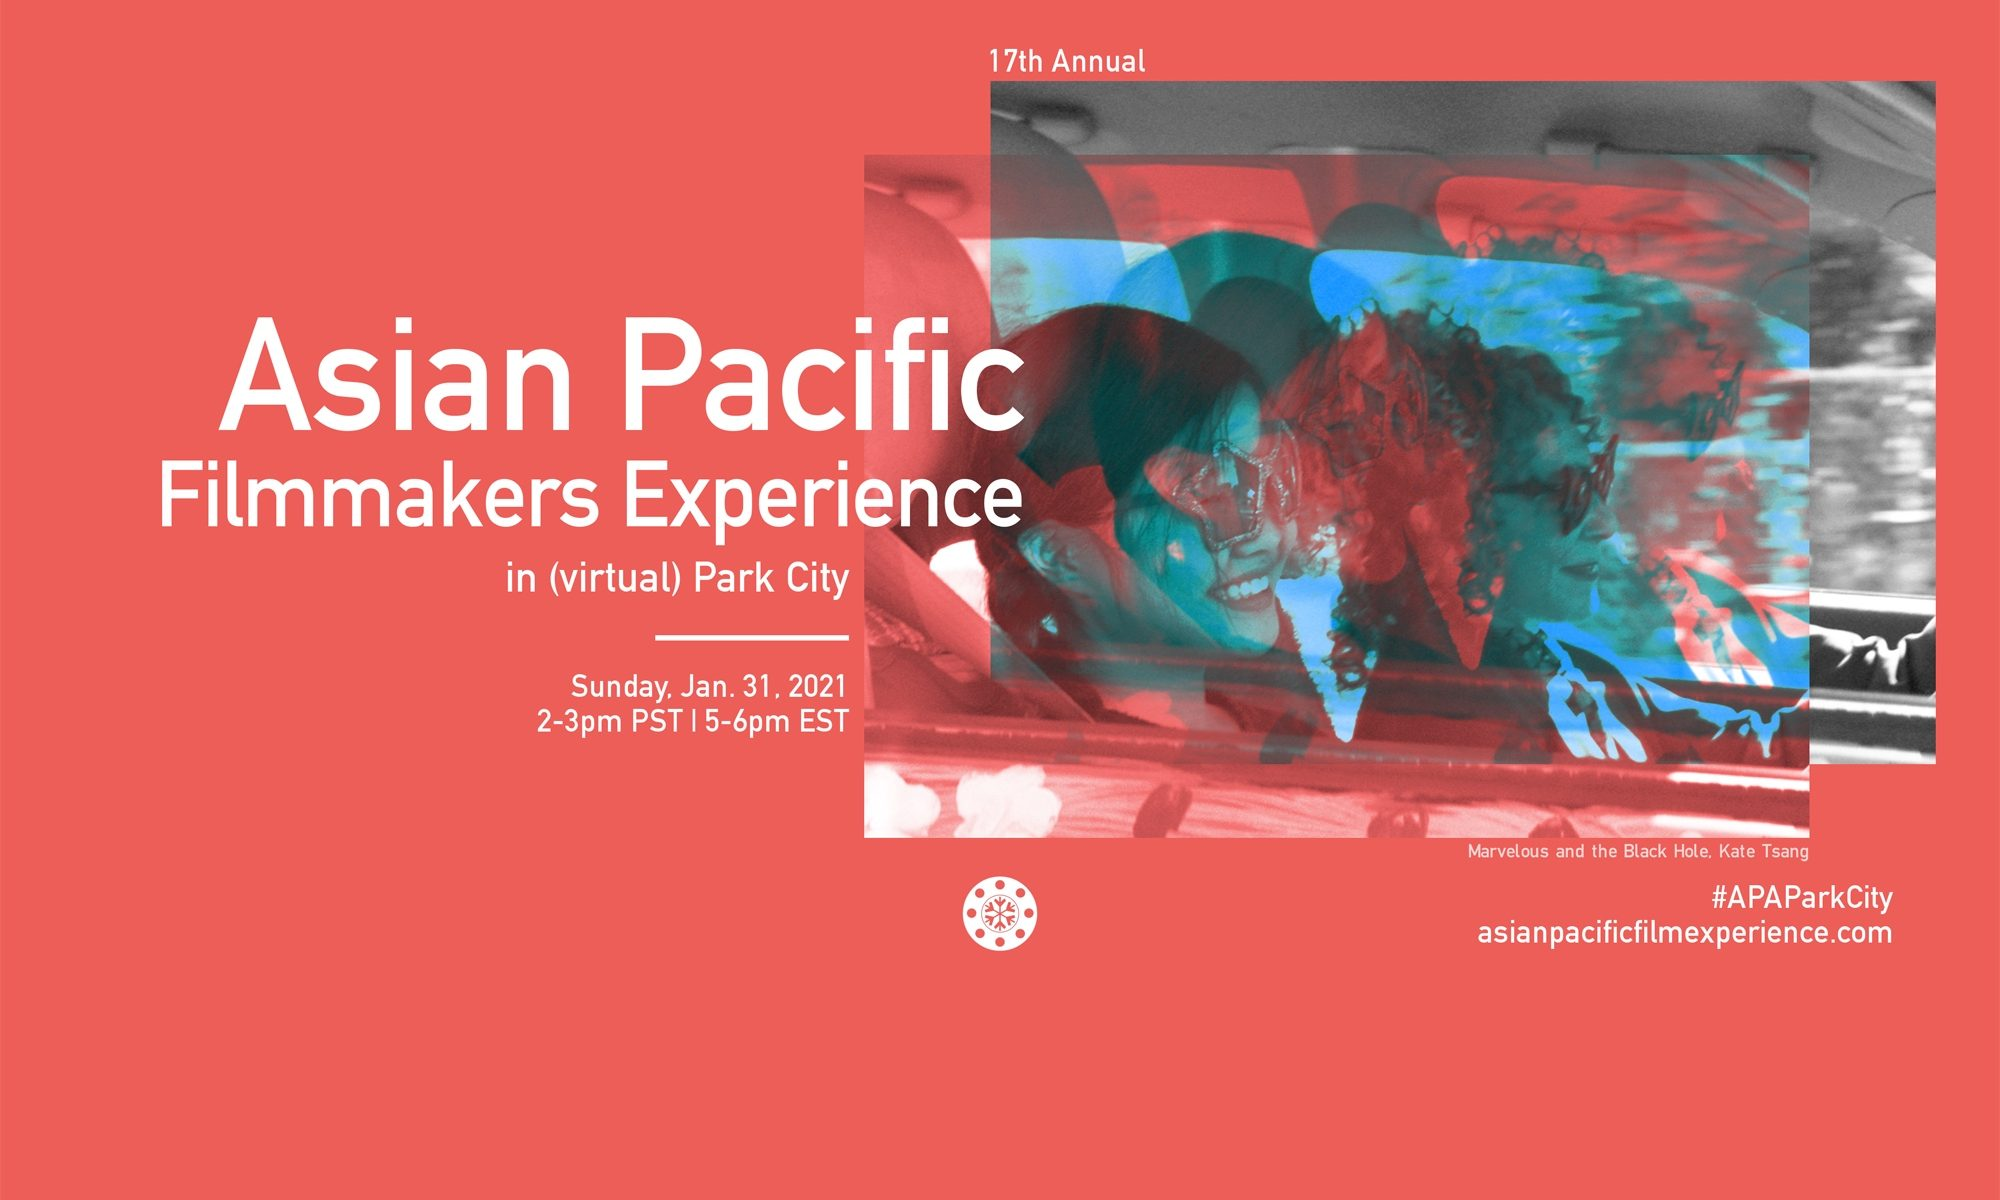 Asian Pacific Filmmakers Experience